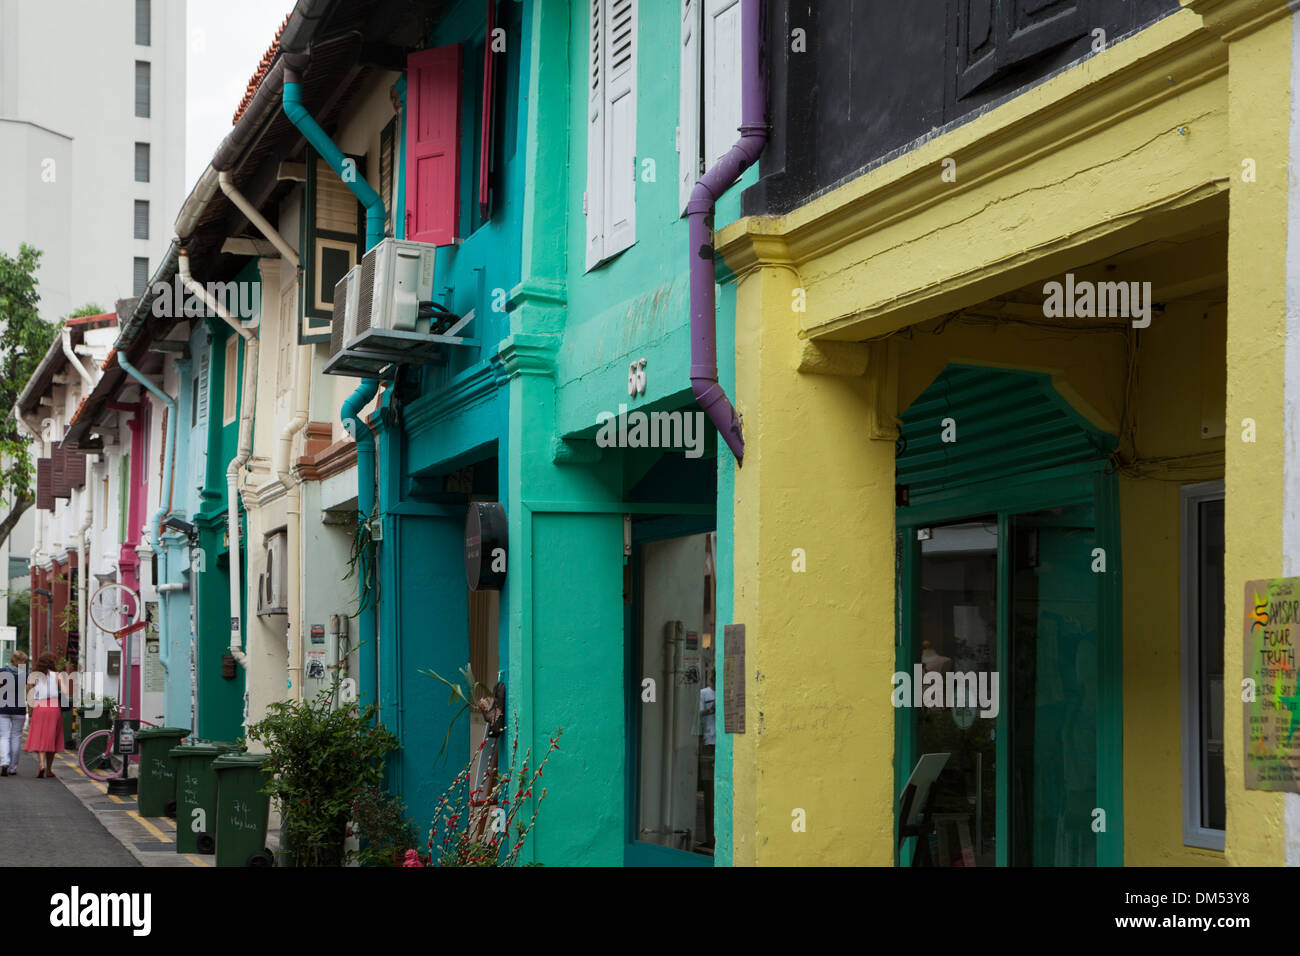 Detail of colourful shop-fronts in Haji Lane, Singapore. - Stock Image